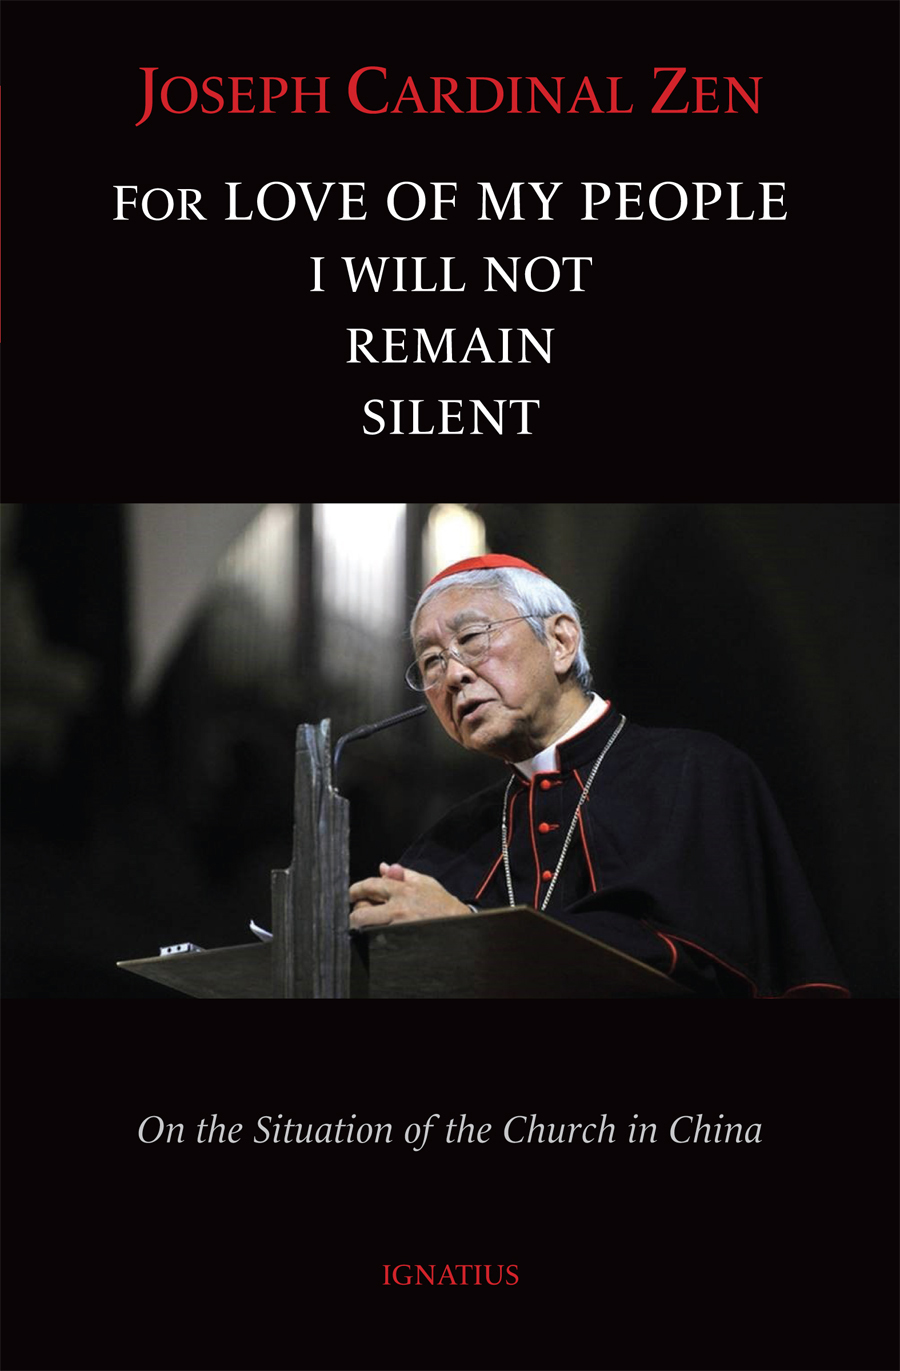 For Love of My People I Will Not Remain Silent